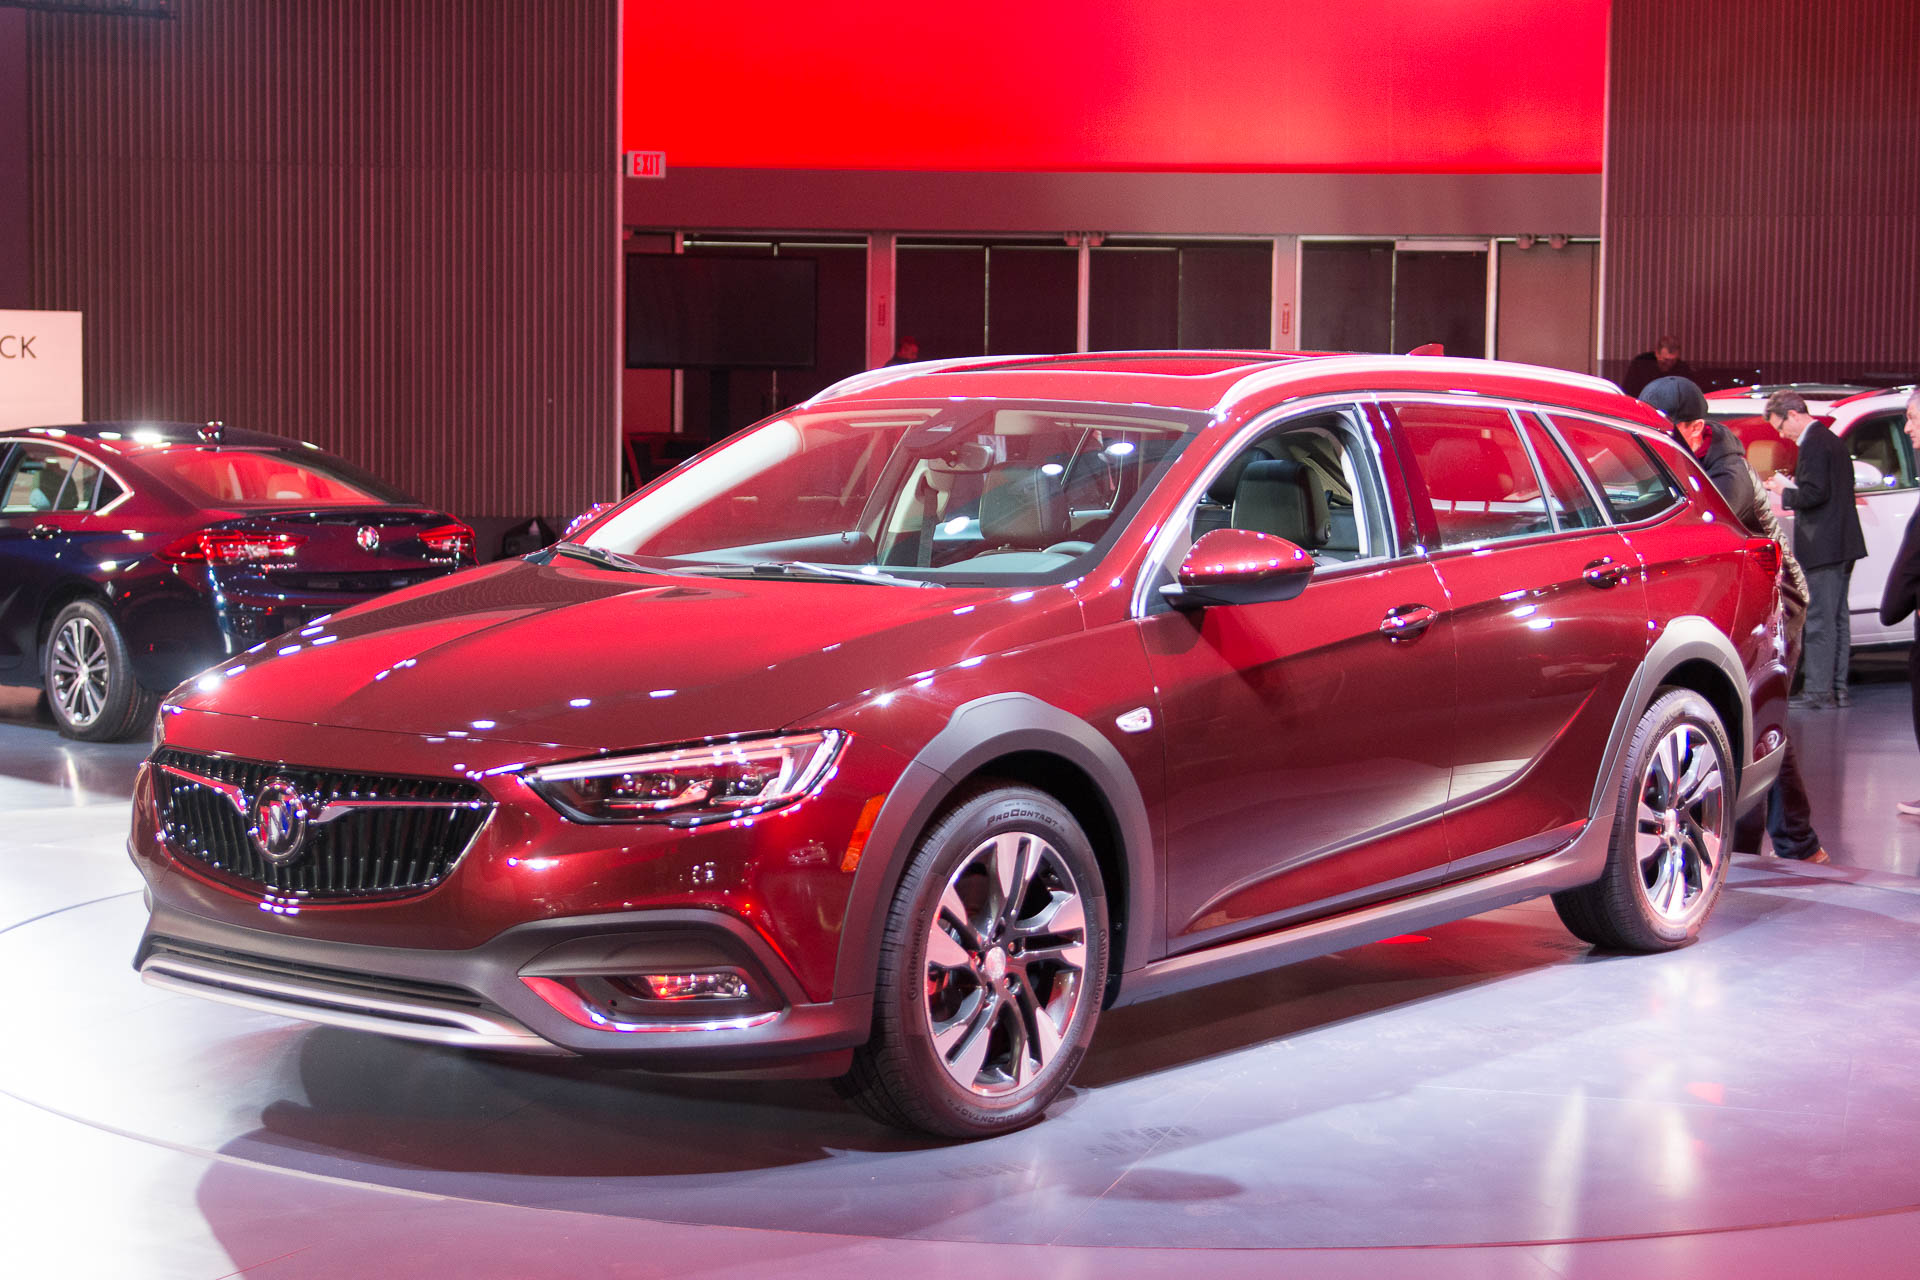 Wagons whoa! 2018 Buick Regal Tour X costs $29,995 to start